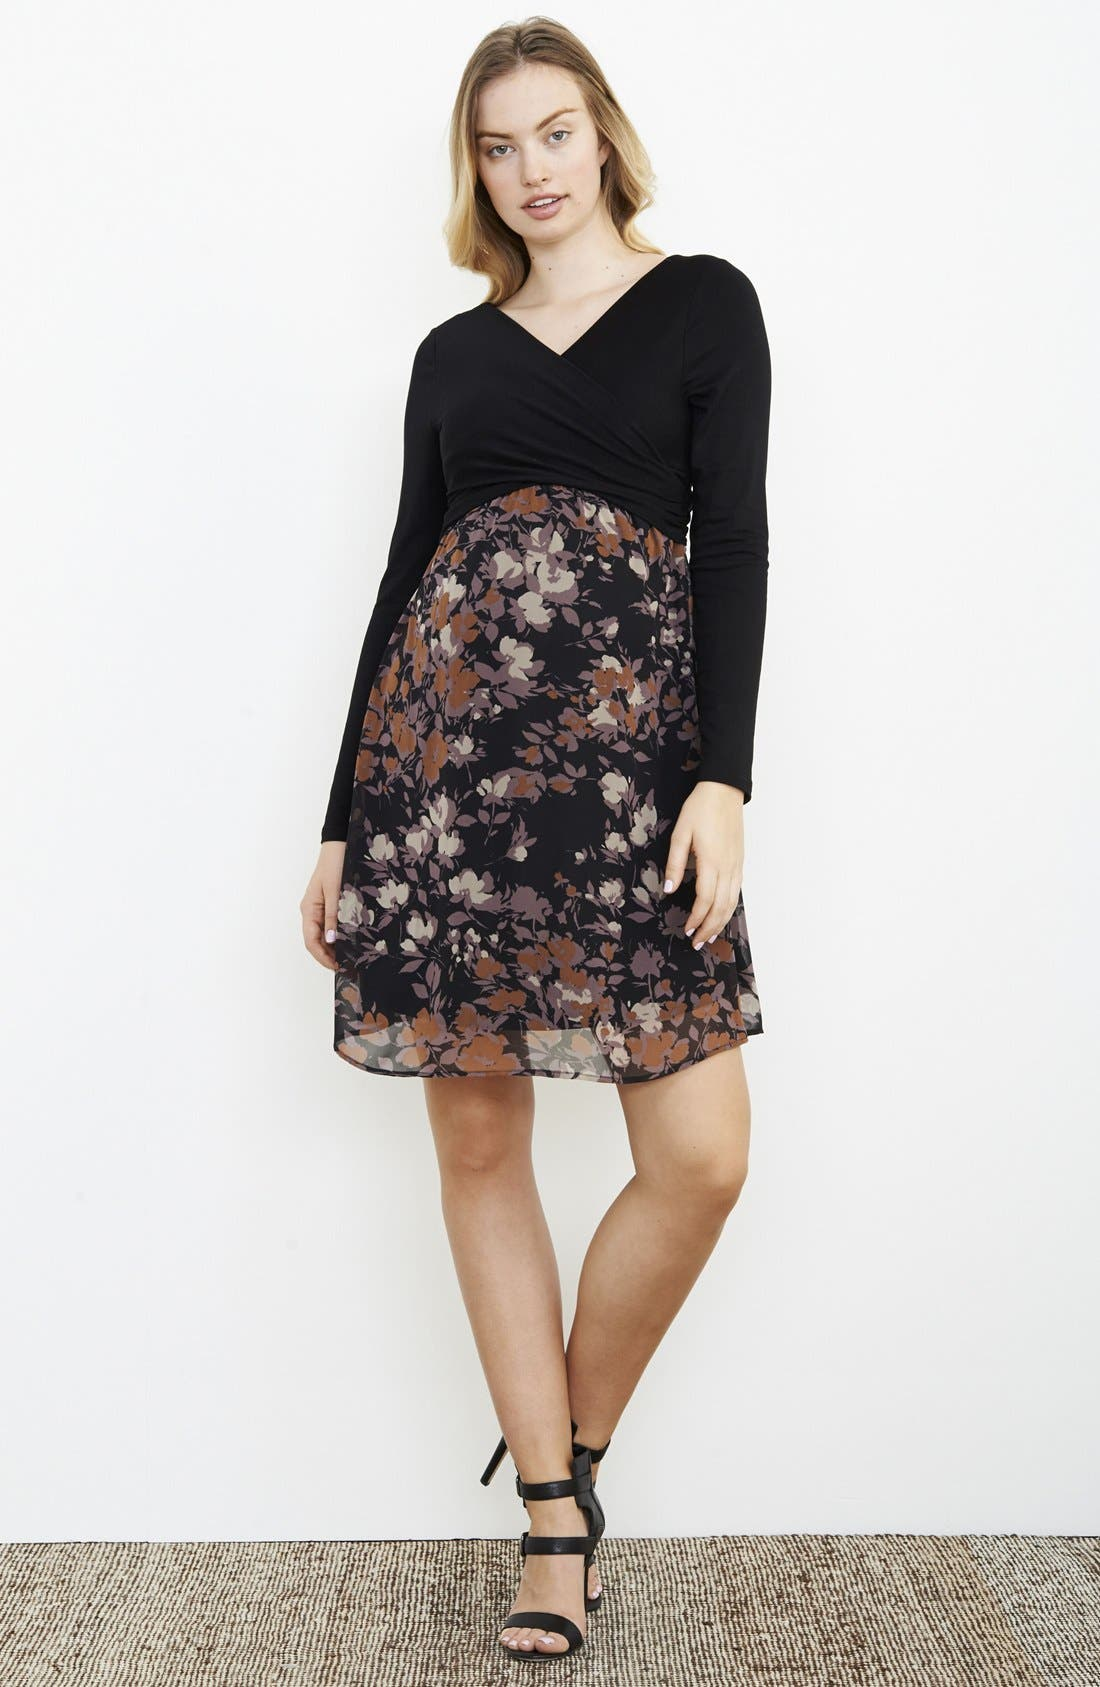 Crossover Maternity Dress,                         Main,                         color, BLACK/ LILAC FLORAL PRINT